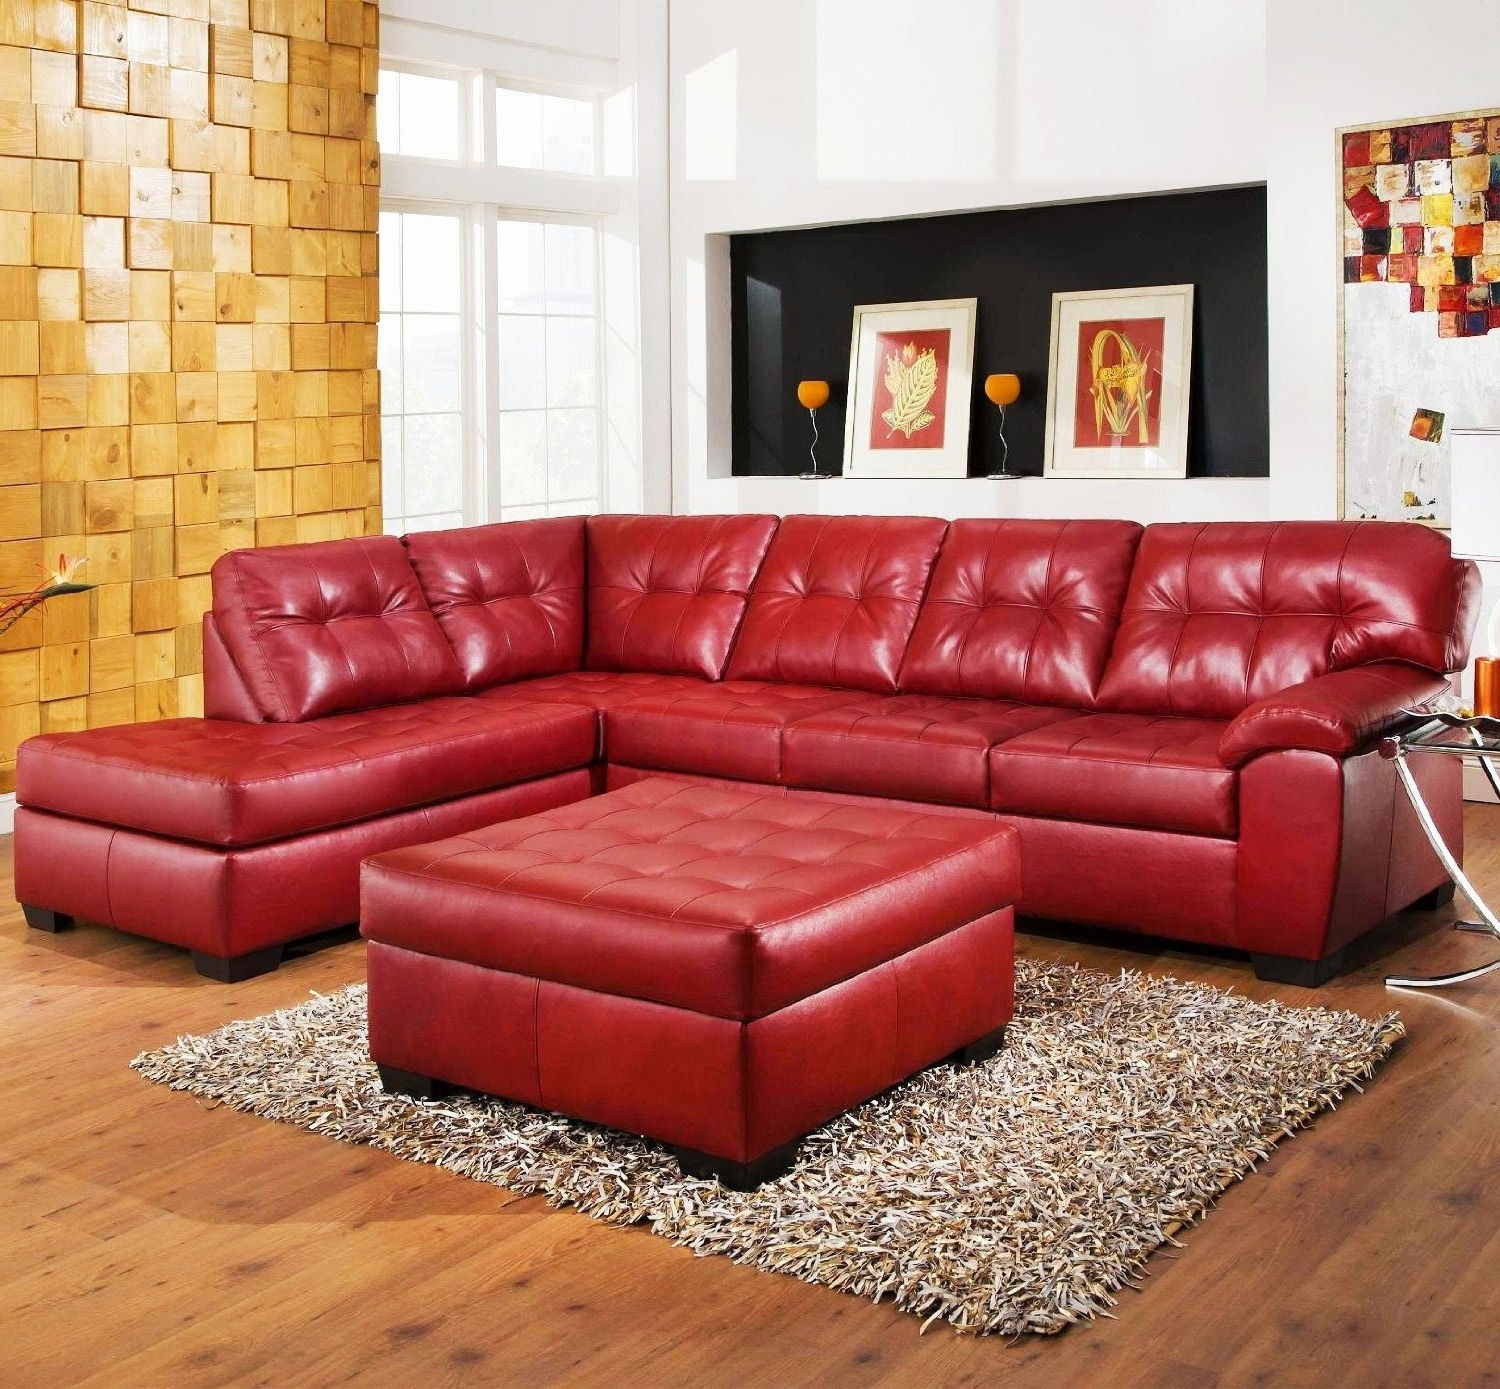 Preferred Red Leather Sectional Sofas With Ottoman Pertaining To Red Couch: Red Leather Sectional Couch (View 2 of 20)